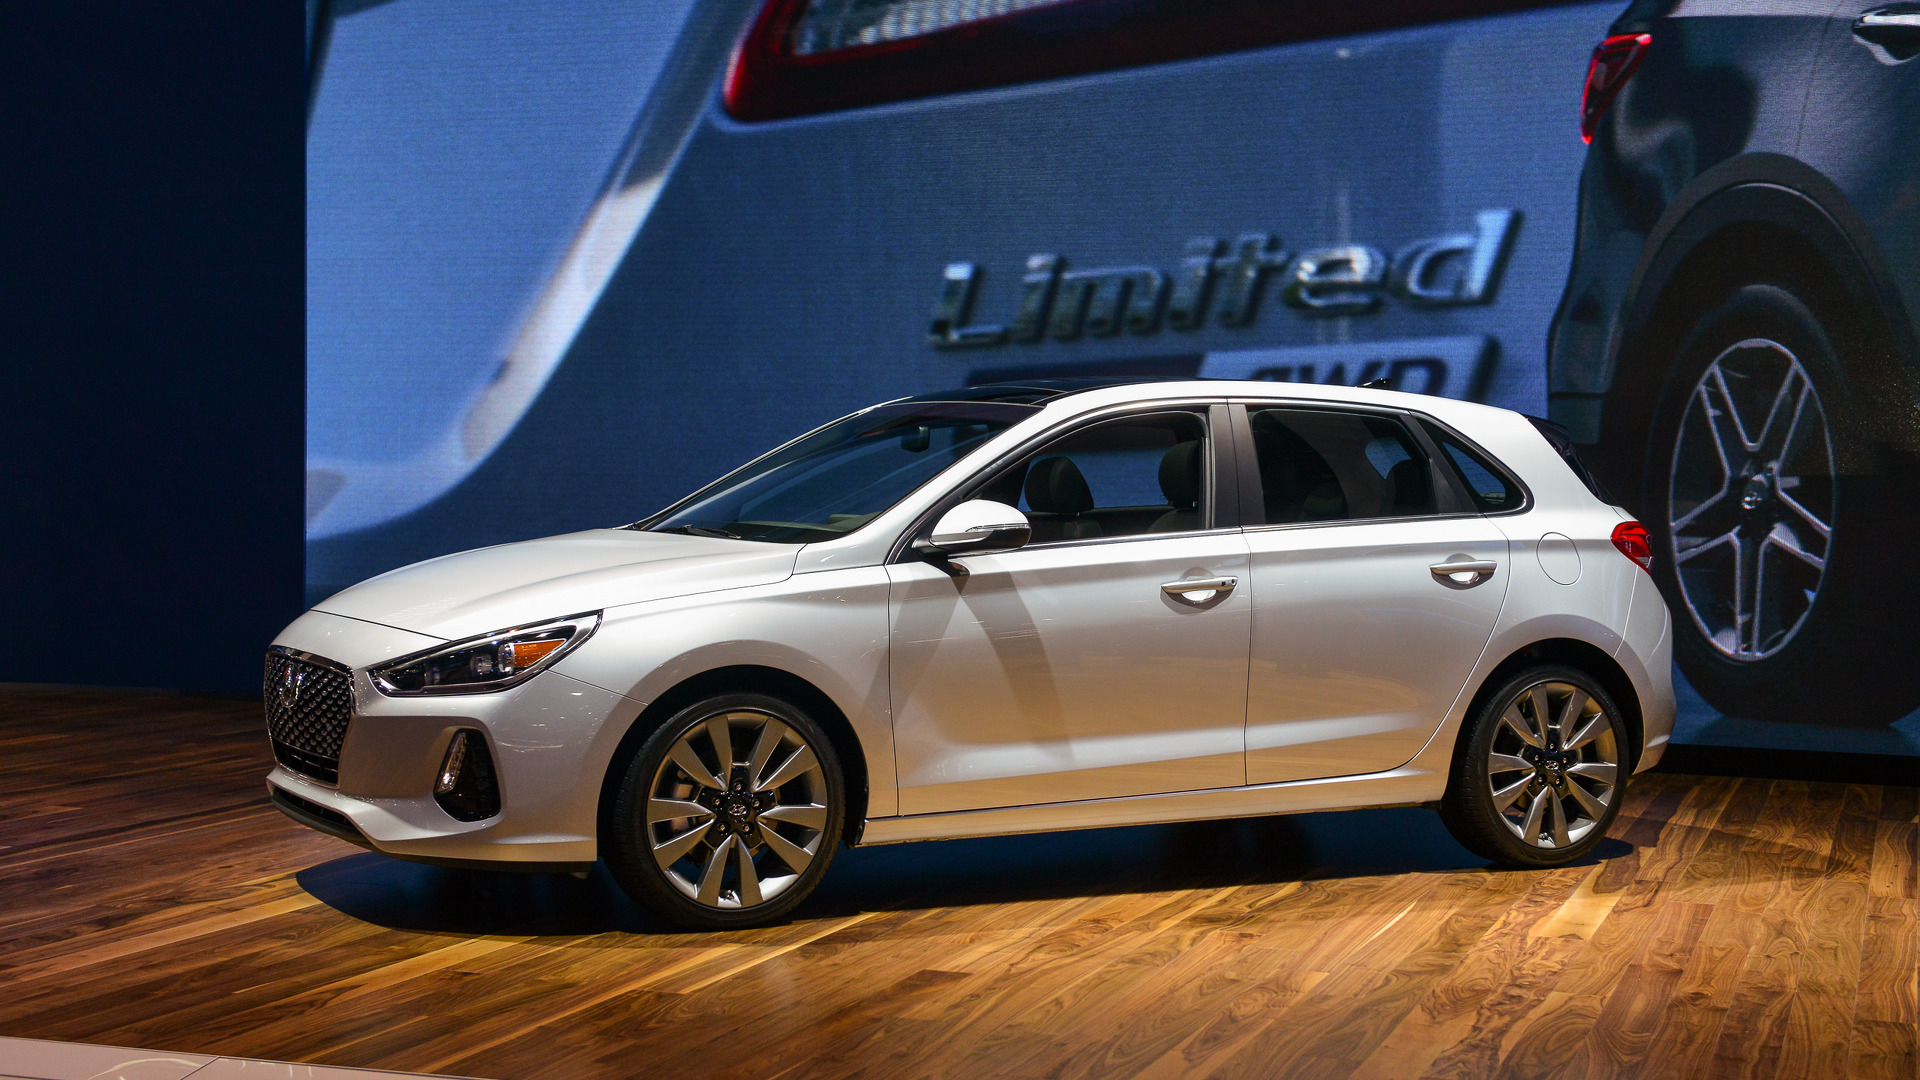 2018 Hyundai Elantra GT Is A Practical Stylish Compact